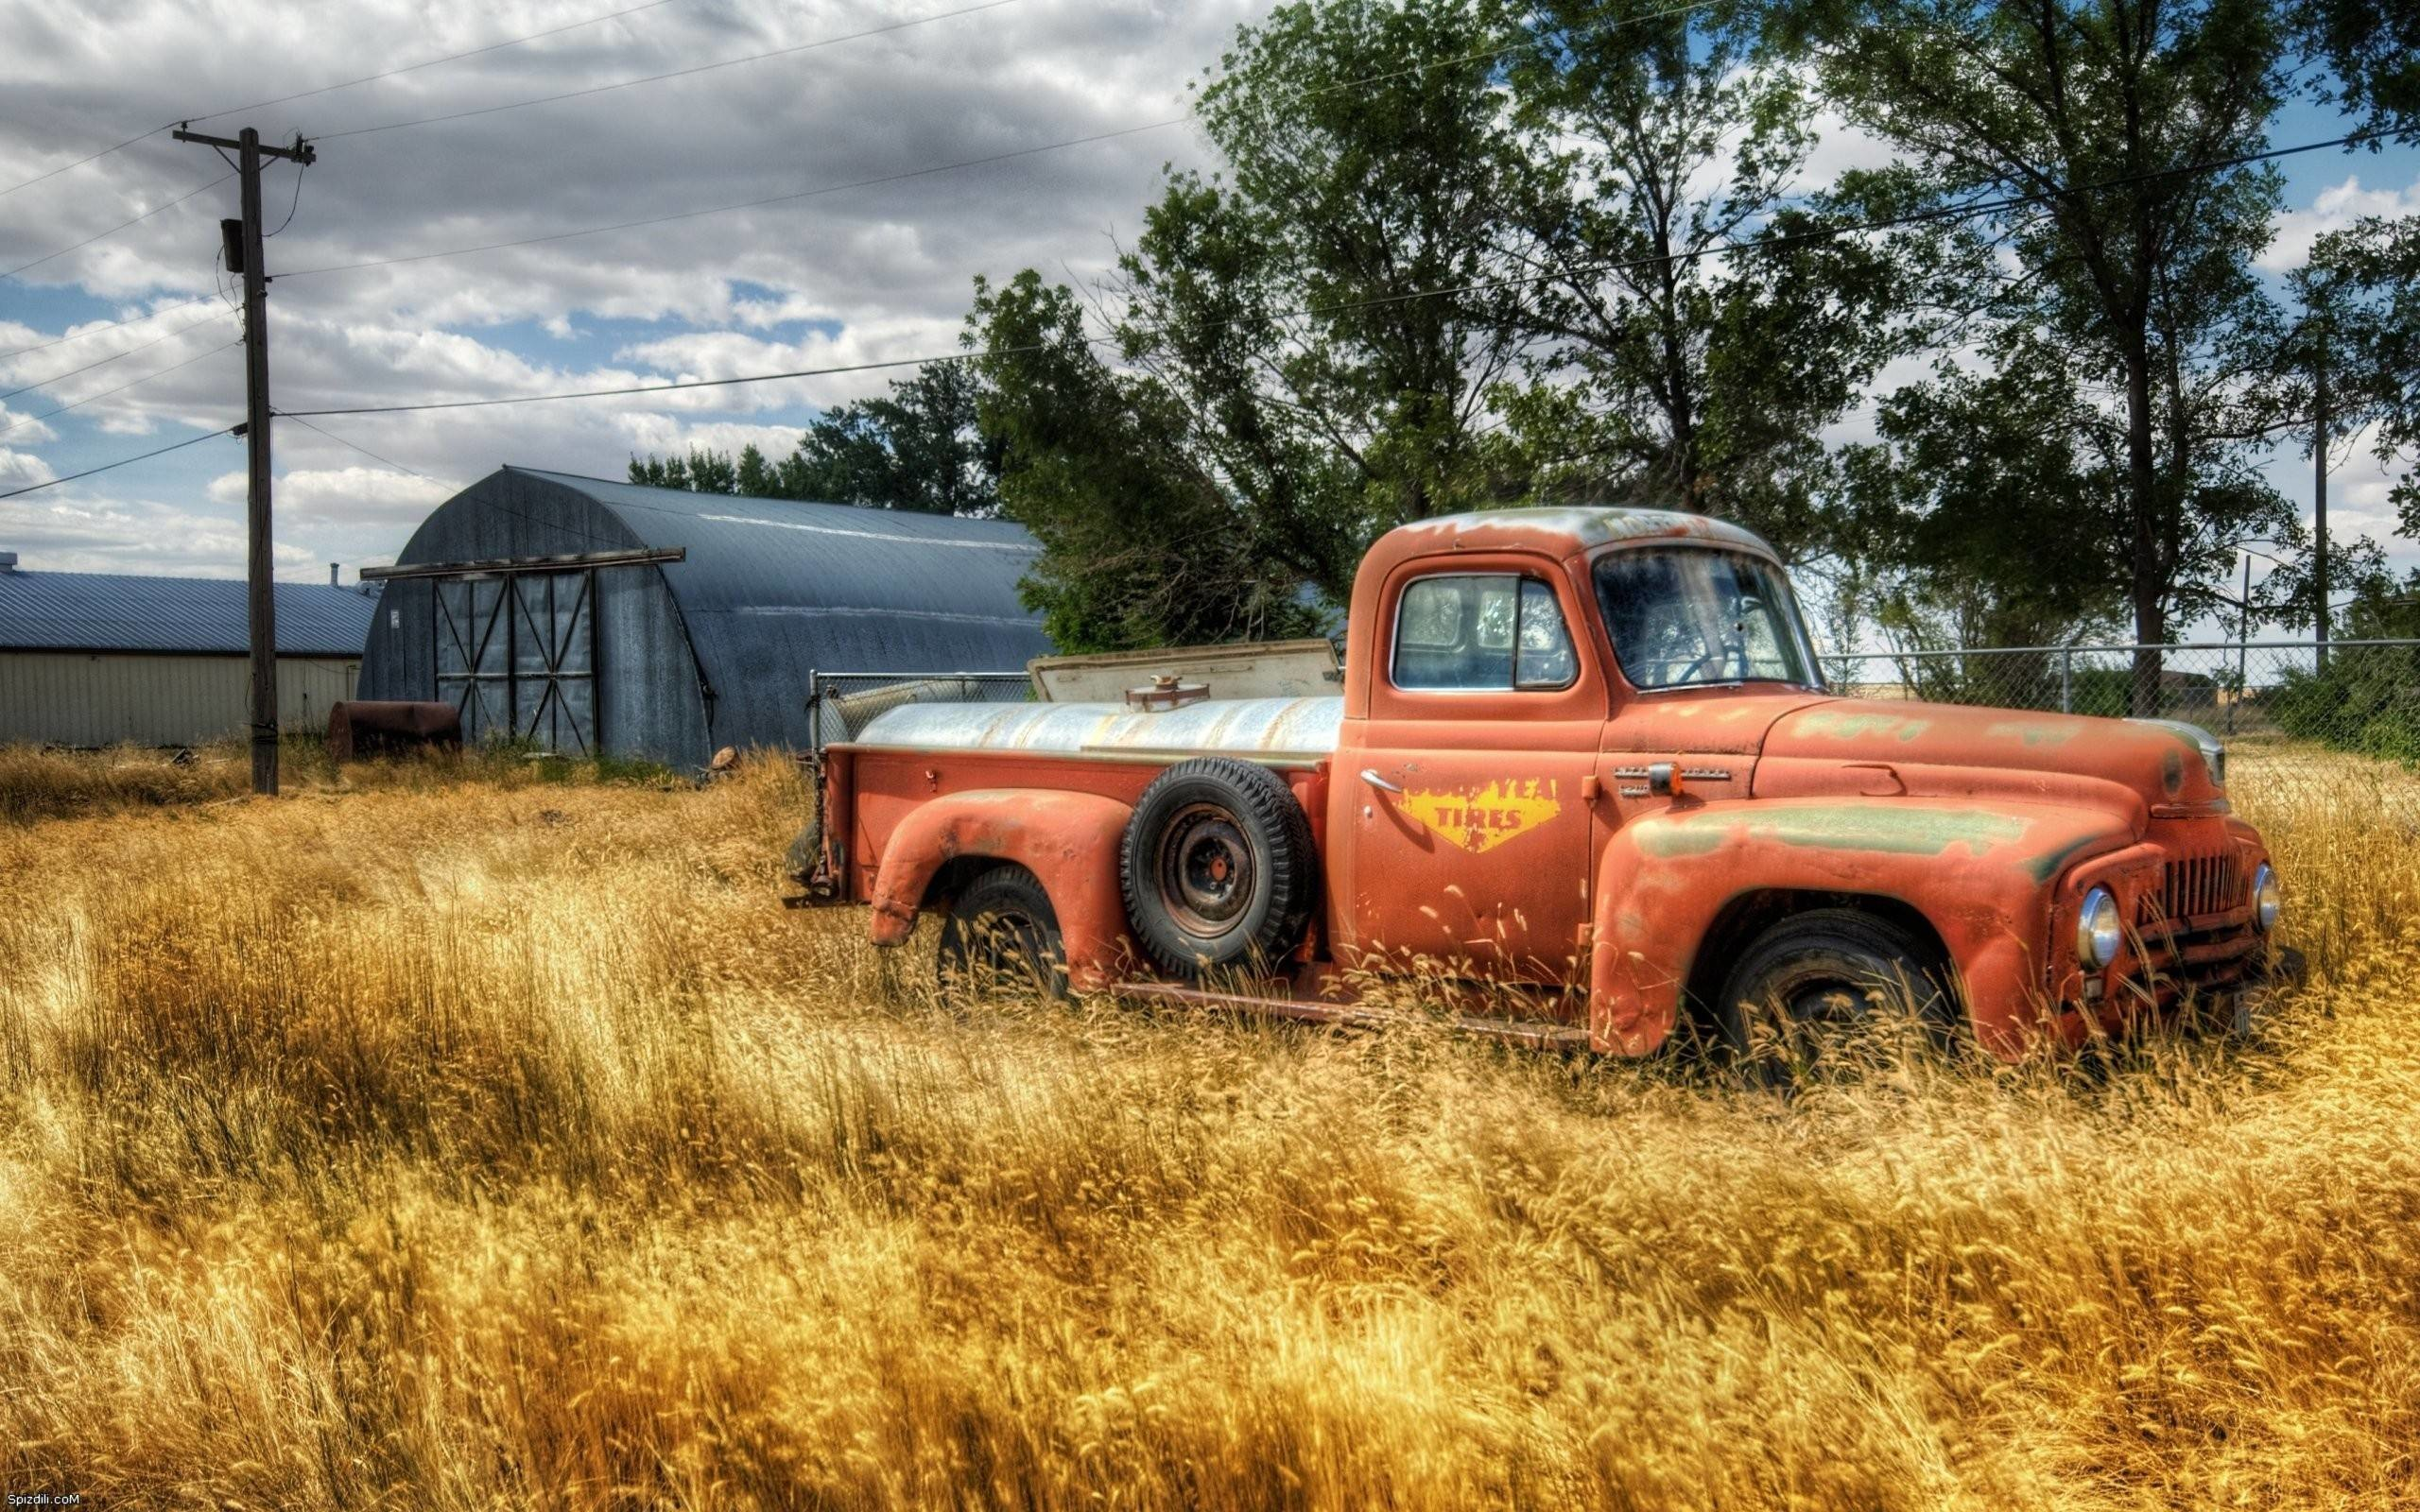 Old Rusted Truck Wallpapers Auto Desktop 2560x1600PX ~ Wallpaper .